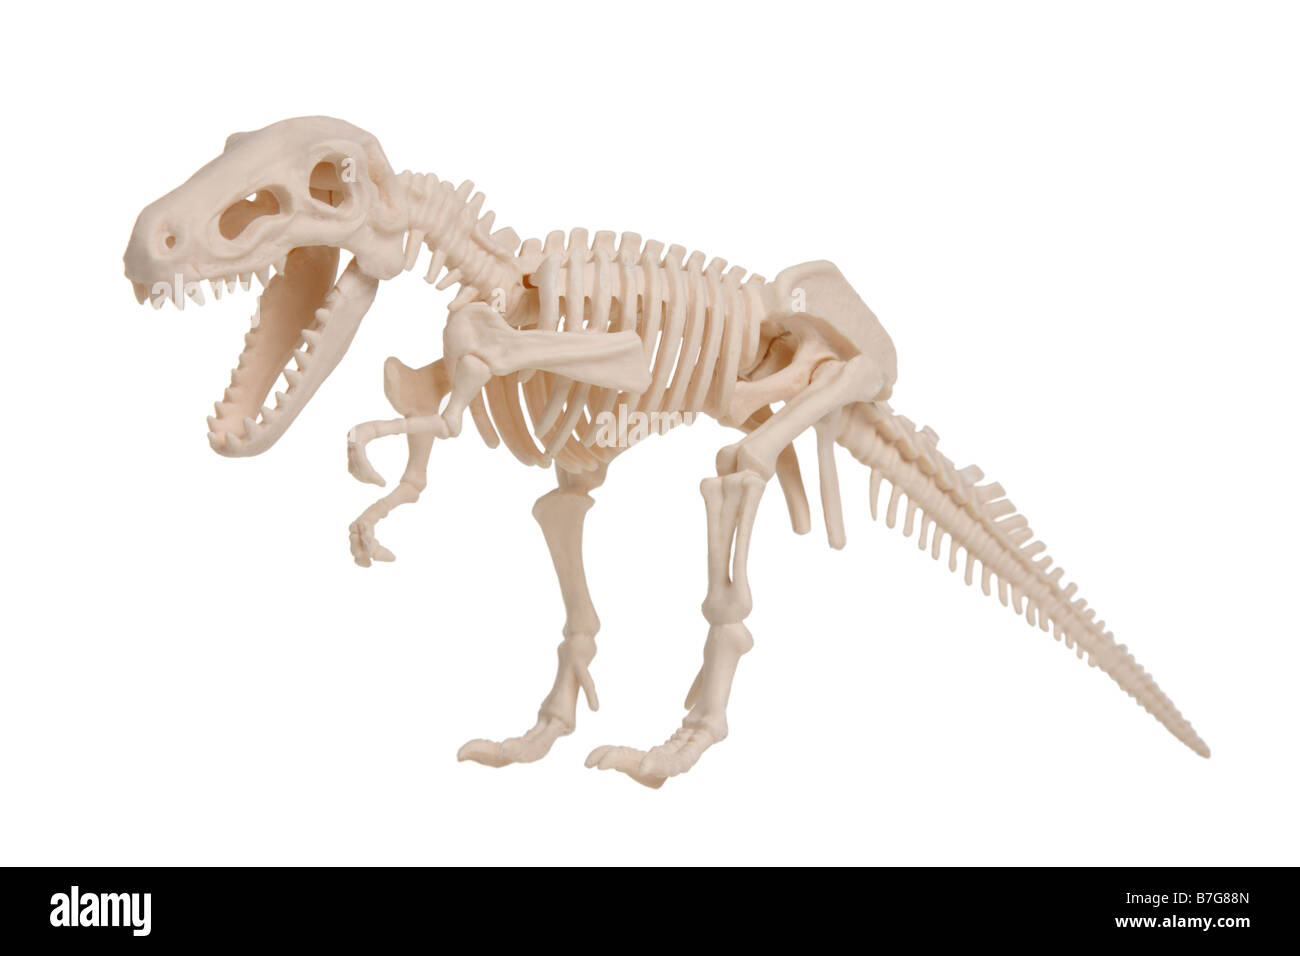 Dinosaur Stock Photos & Dinosaur Stock Images - Alamy - photo#21